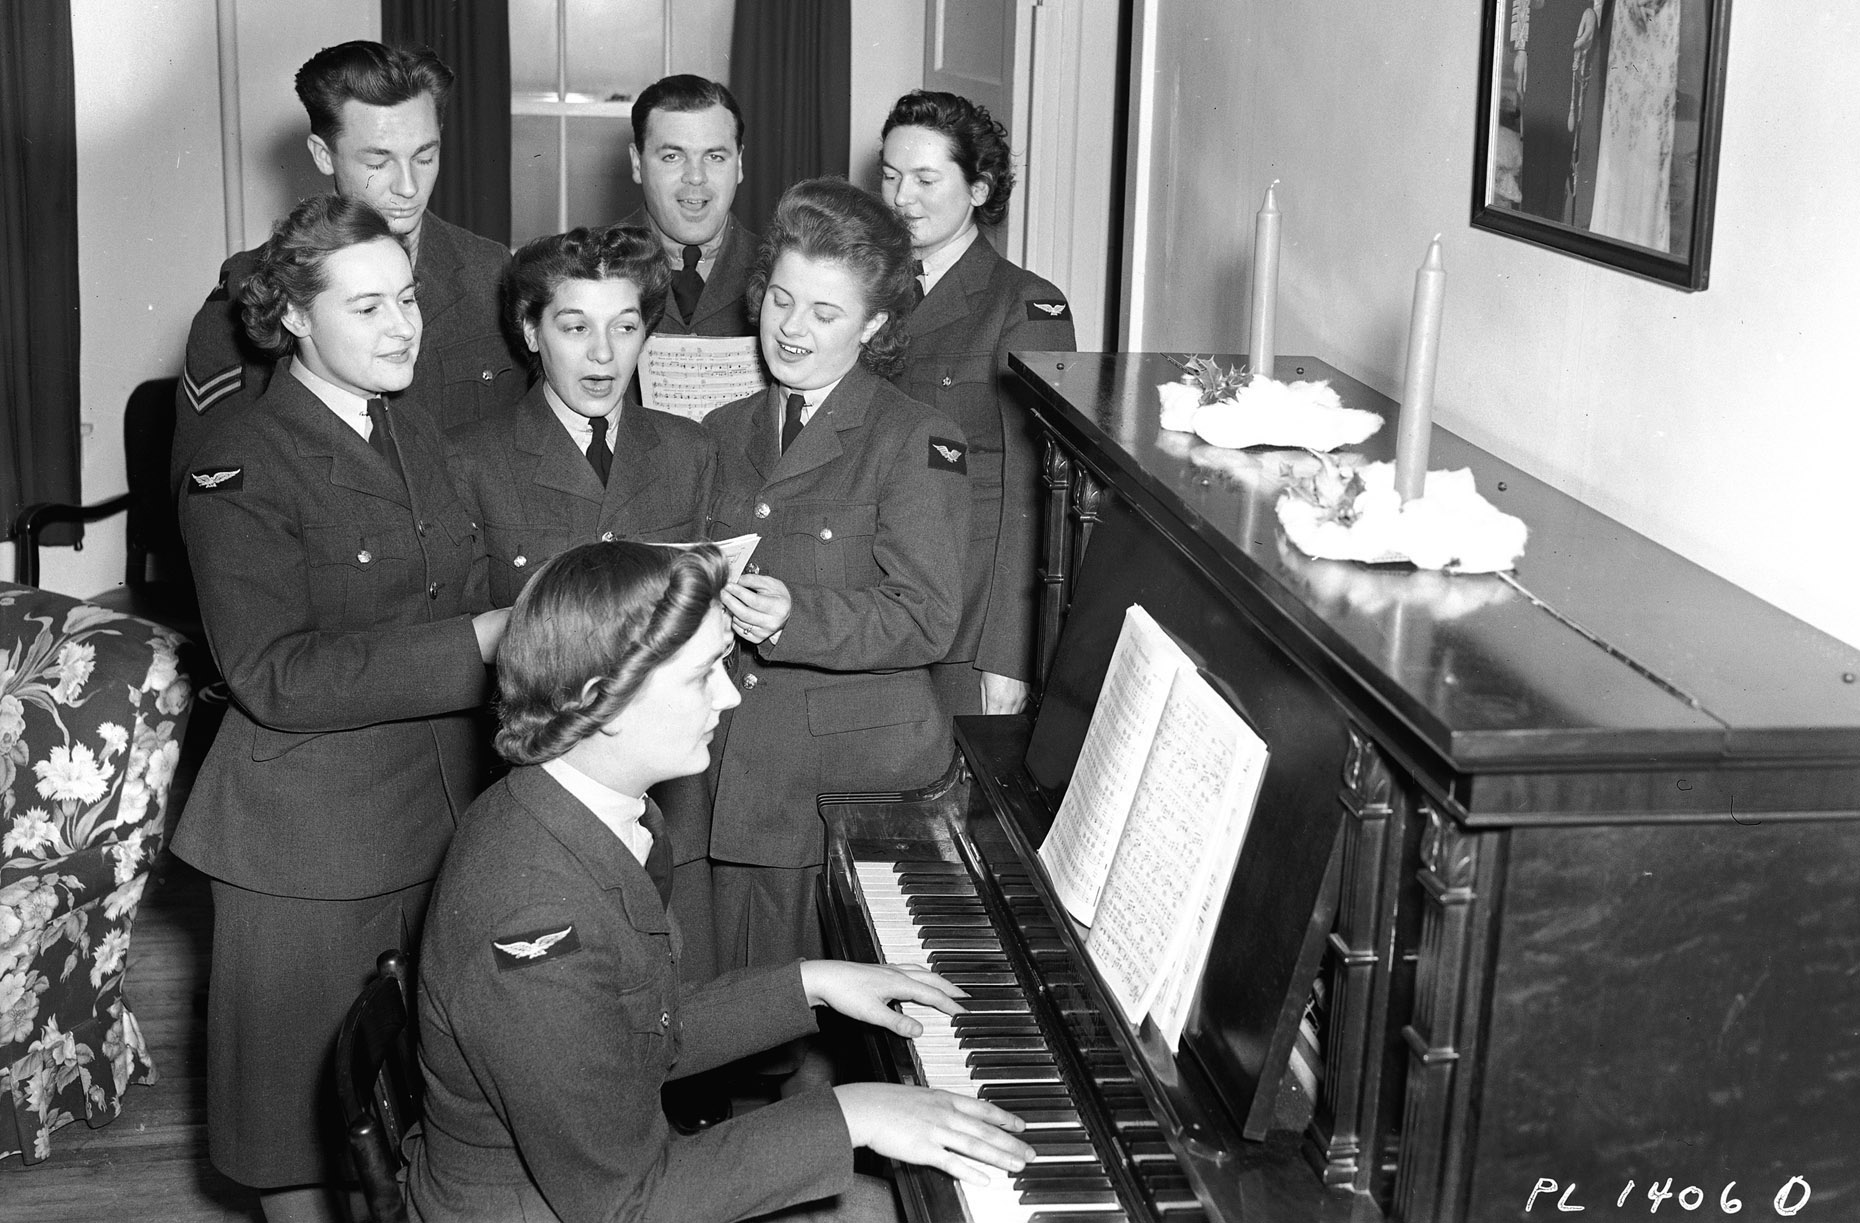 Airwomen (members of the RCAF's Women's Division) and airmen sing Christmas carols at No. 7 Manning Depot, Rockcliffe, Ottawa, on December 21, 1942. Back row, left to right: Corporal E. Trainer, North Augusta, Ontario; Flight Sergeant R.D. McDonald, London, Ontario; Aircraftwoman 2nd Class M.T. Houston, Montreal, Quebec. Front row, left to right:  Aircraftwoman 2nd Class H.G. Wheeler, Weston; Aircraftwoman 2nd Class M.N. DeFrancis, Montreal, Quebec; Aircraftwoman 2nd Class J.B. Watson, Winnipeg, Manitoba, and, at the piano, Aircraftwoman 1st Class Ella McMahon, Killal, Alberta.. PHOTO: DND Archives, PL-14060